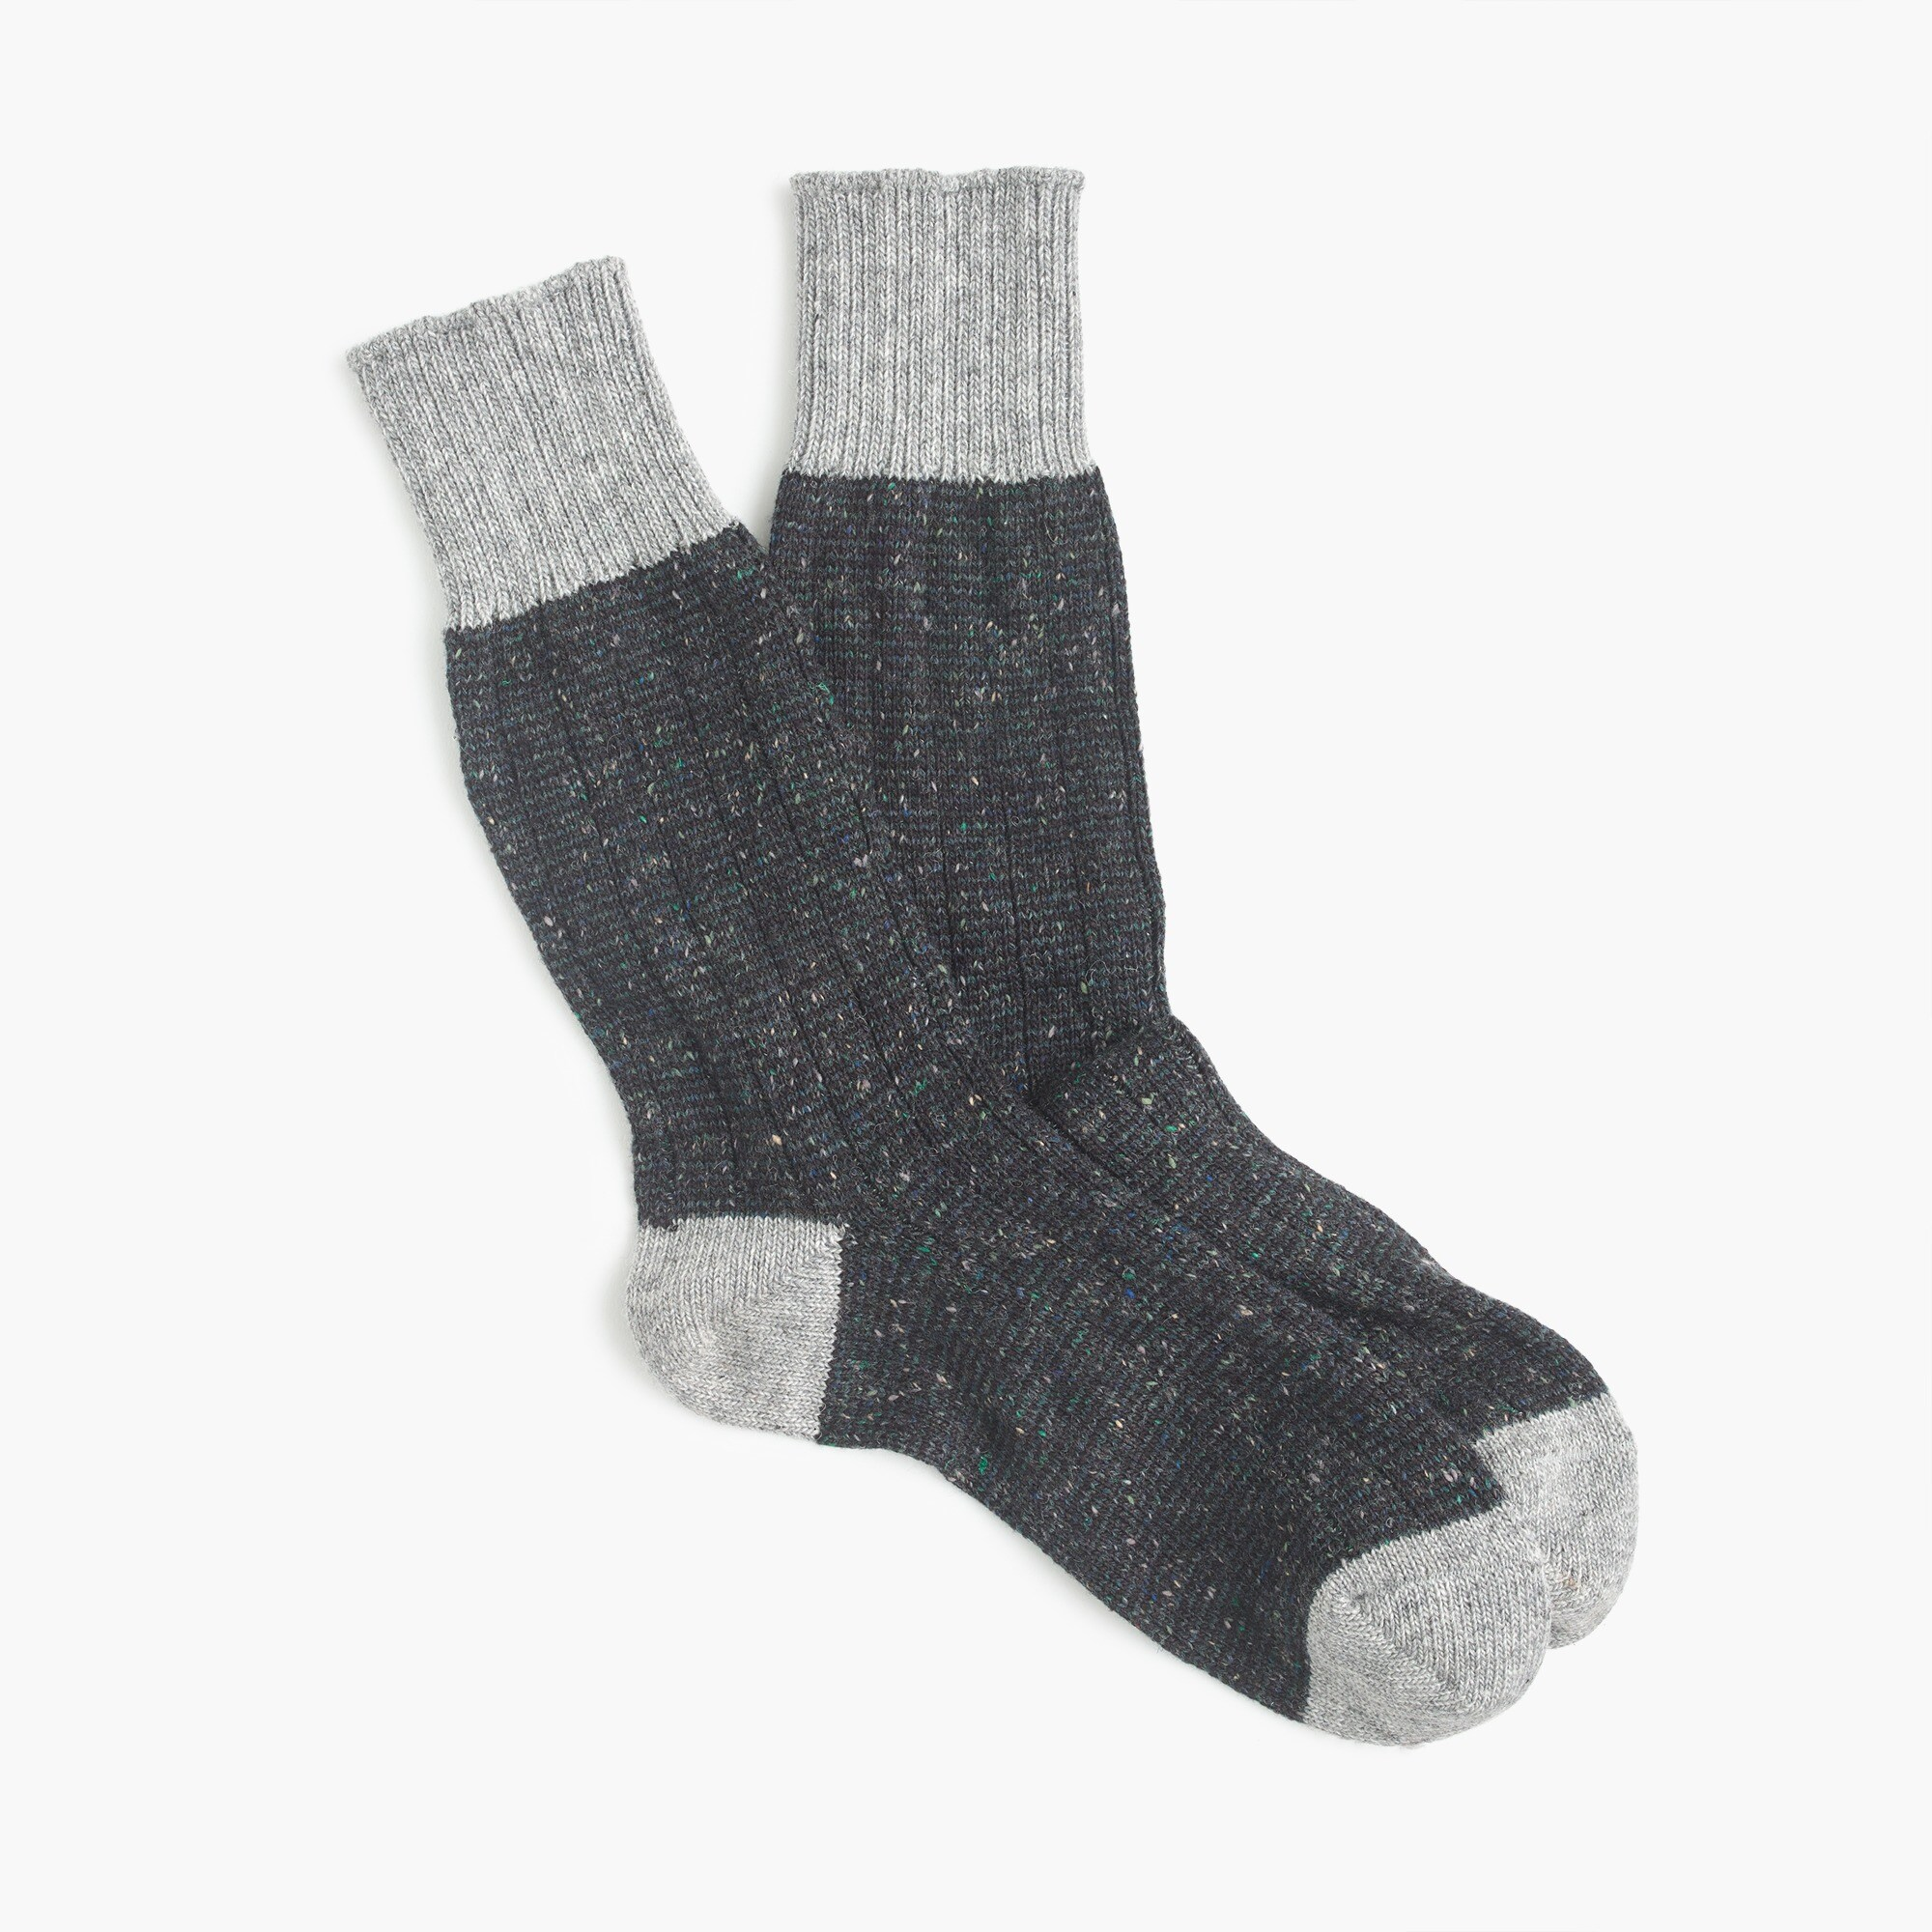 Anonymous Ism™ grey crew socks men socks c